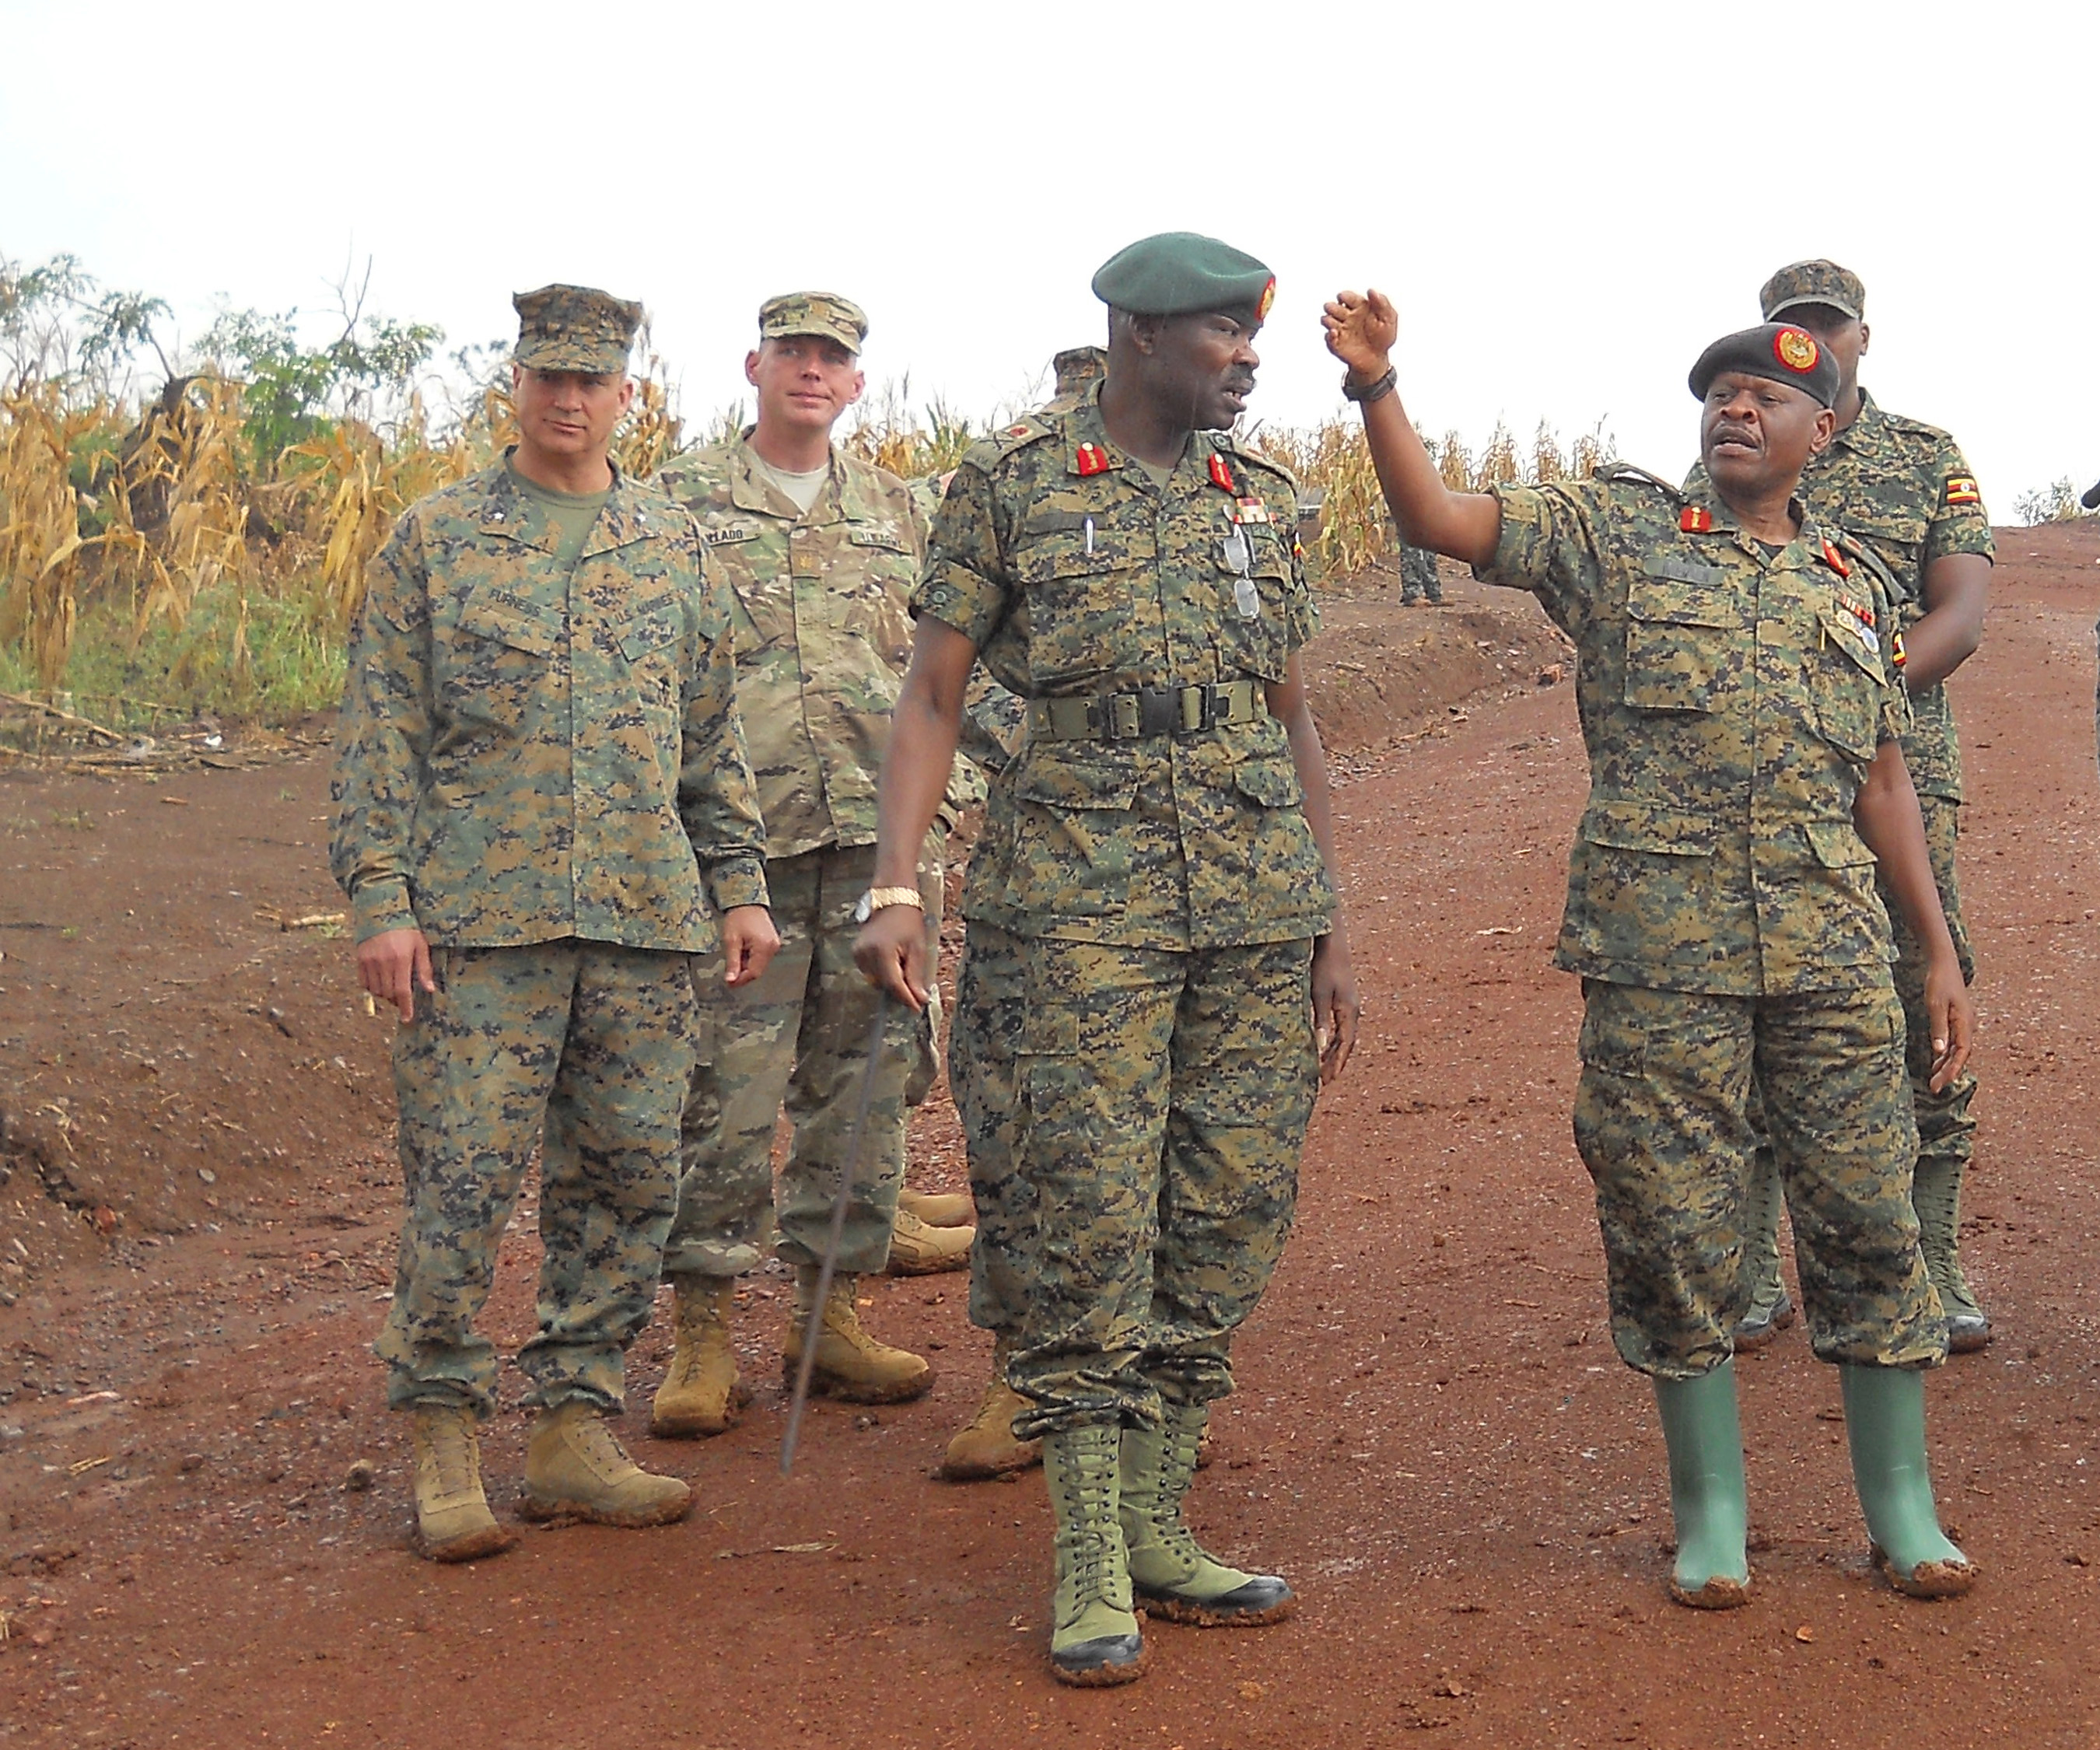 Lt. General Wilson Mbadi, the Deputy Chief of Uganda People's Defense Force (far right), gives Combined Joint Task Force-Horn of Africa commander U.S. Marine Corps Brig. Gen David Furness (far left) a tour of the Uganda Rapid Deployment Capability Center training location, based in Jinja, Uganda, July 7. The tour took place on the same day as an historic graduation of 60 UPDF engineers from Class 17.2, which marked the conclusion of the first class where UPDF instructors both ran and taught the entire course. Class 17.2's training took place at the Uganda Rapid Deployment Capability Center. (Courtesy photo by Uganda Army Lt. Col. Nelson Aheebwa)